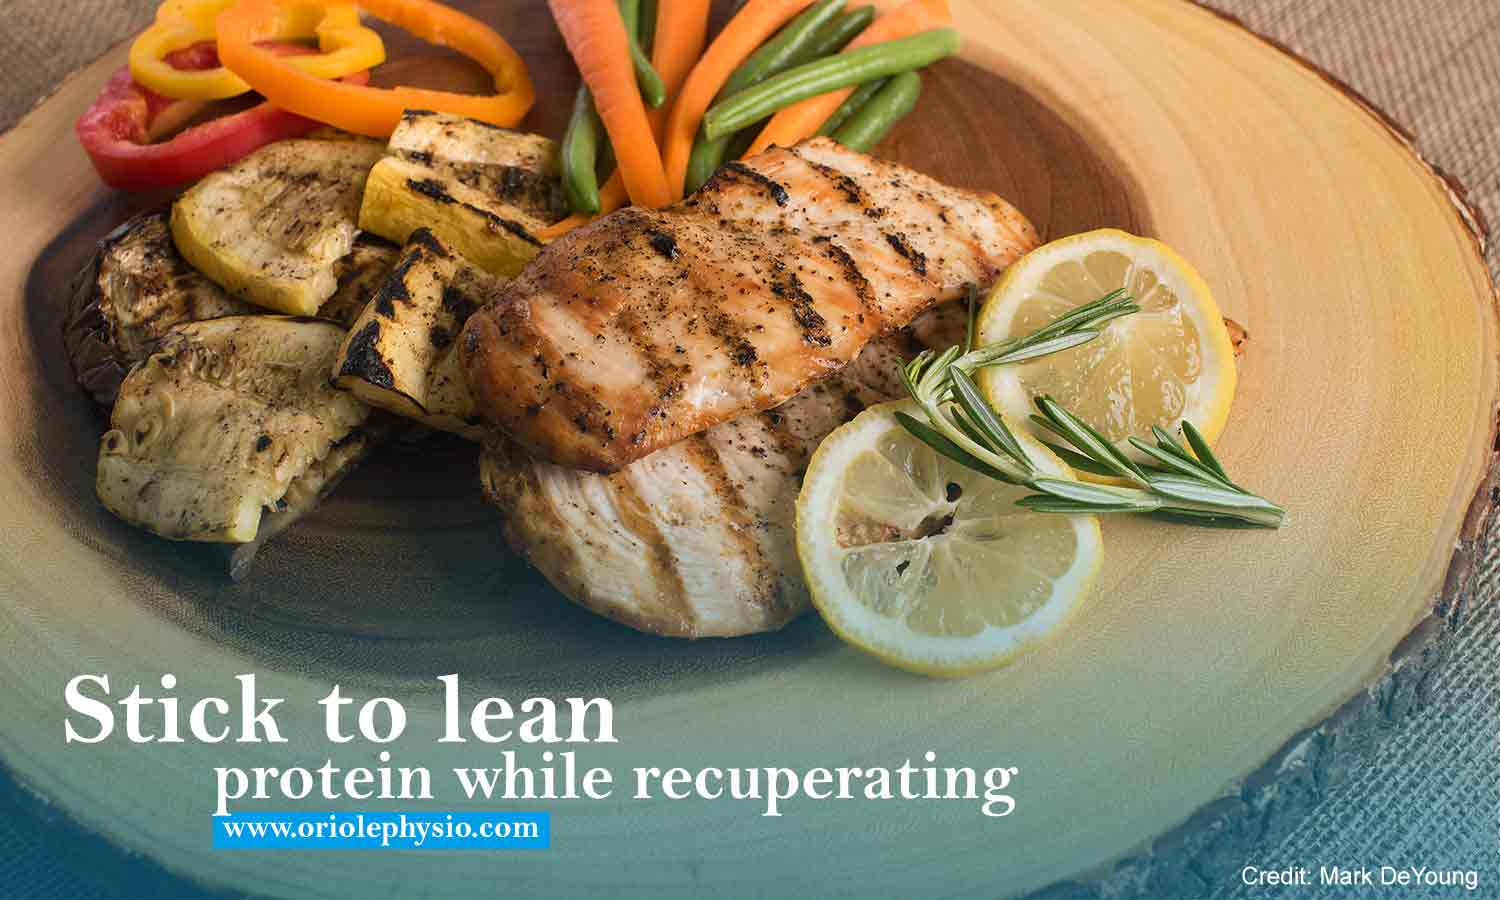 Stick to lean protein while recuperating